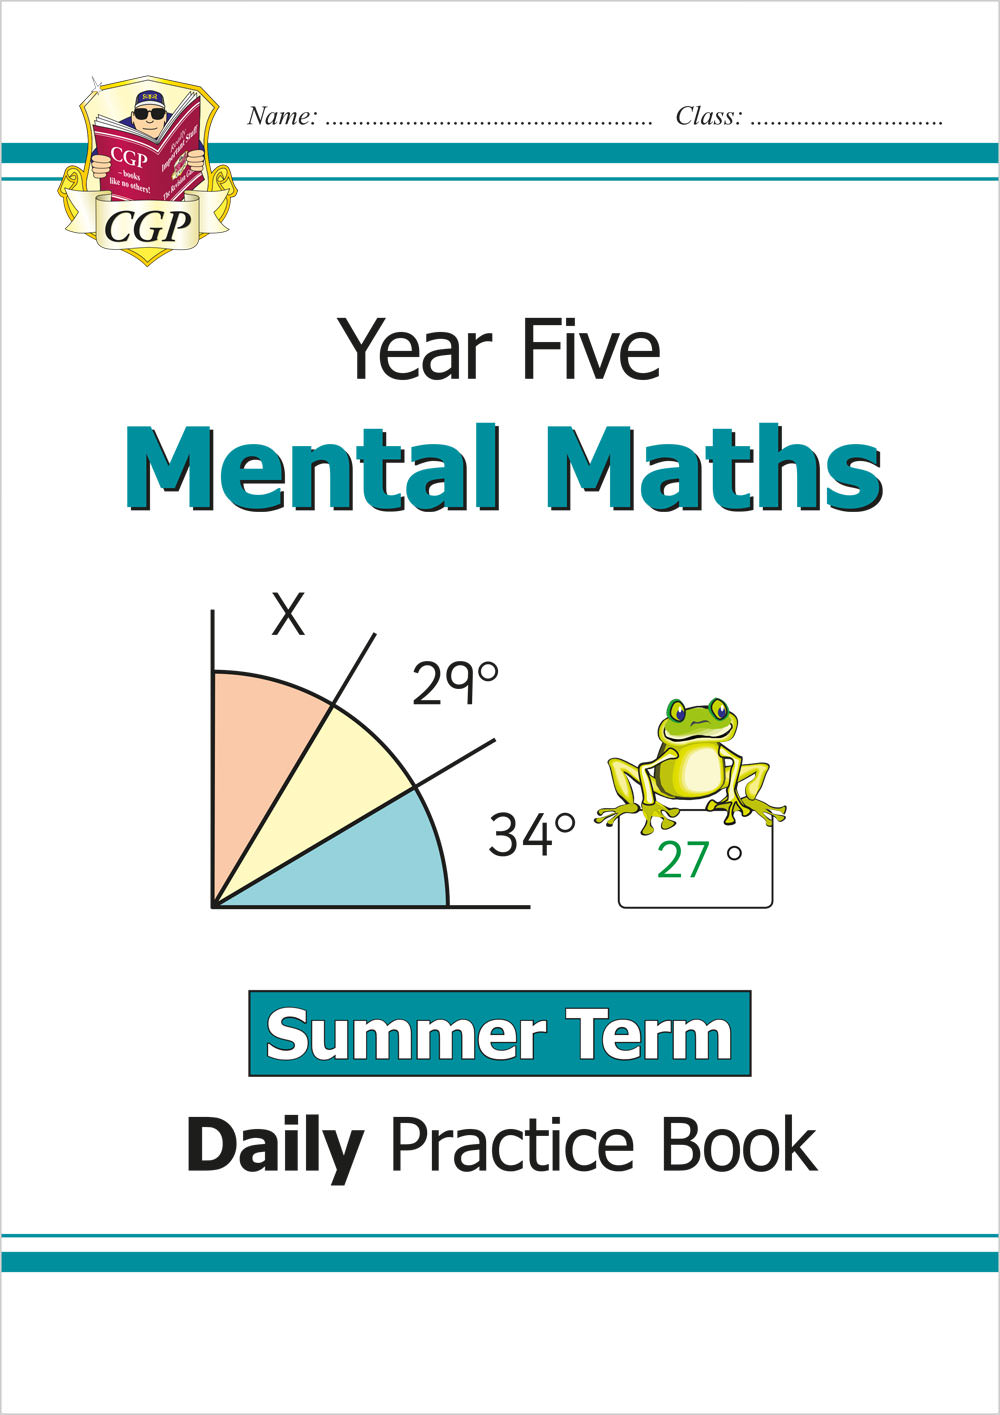 M5MWSU21 - New Mental Maths Daily Practice Book: Year 5 - Summer Term